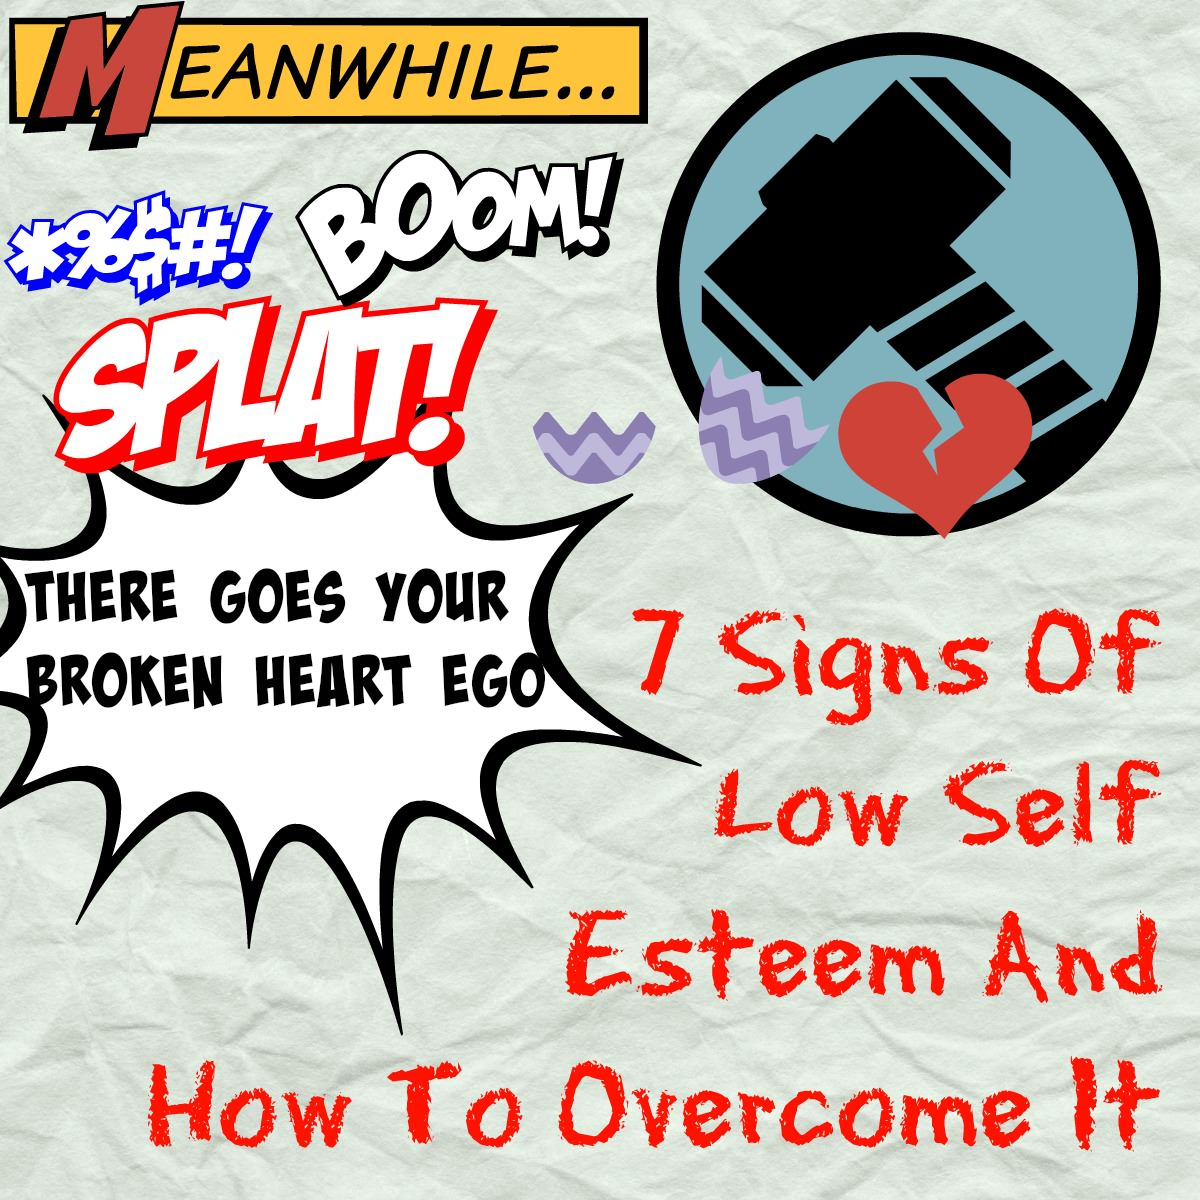 Why Do I Hate Myself 7 Signs Of Low Self Esteem And How To Overcome It